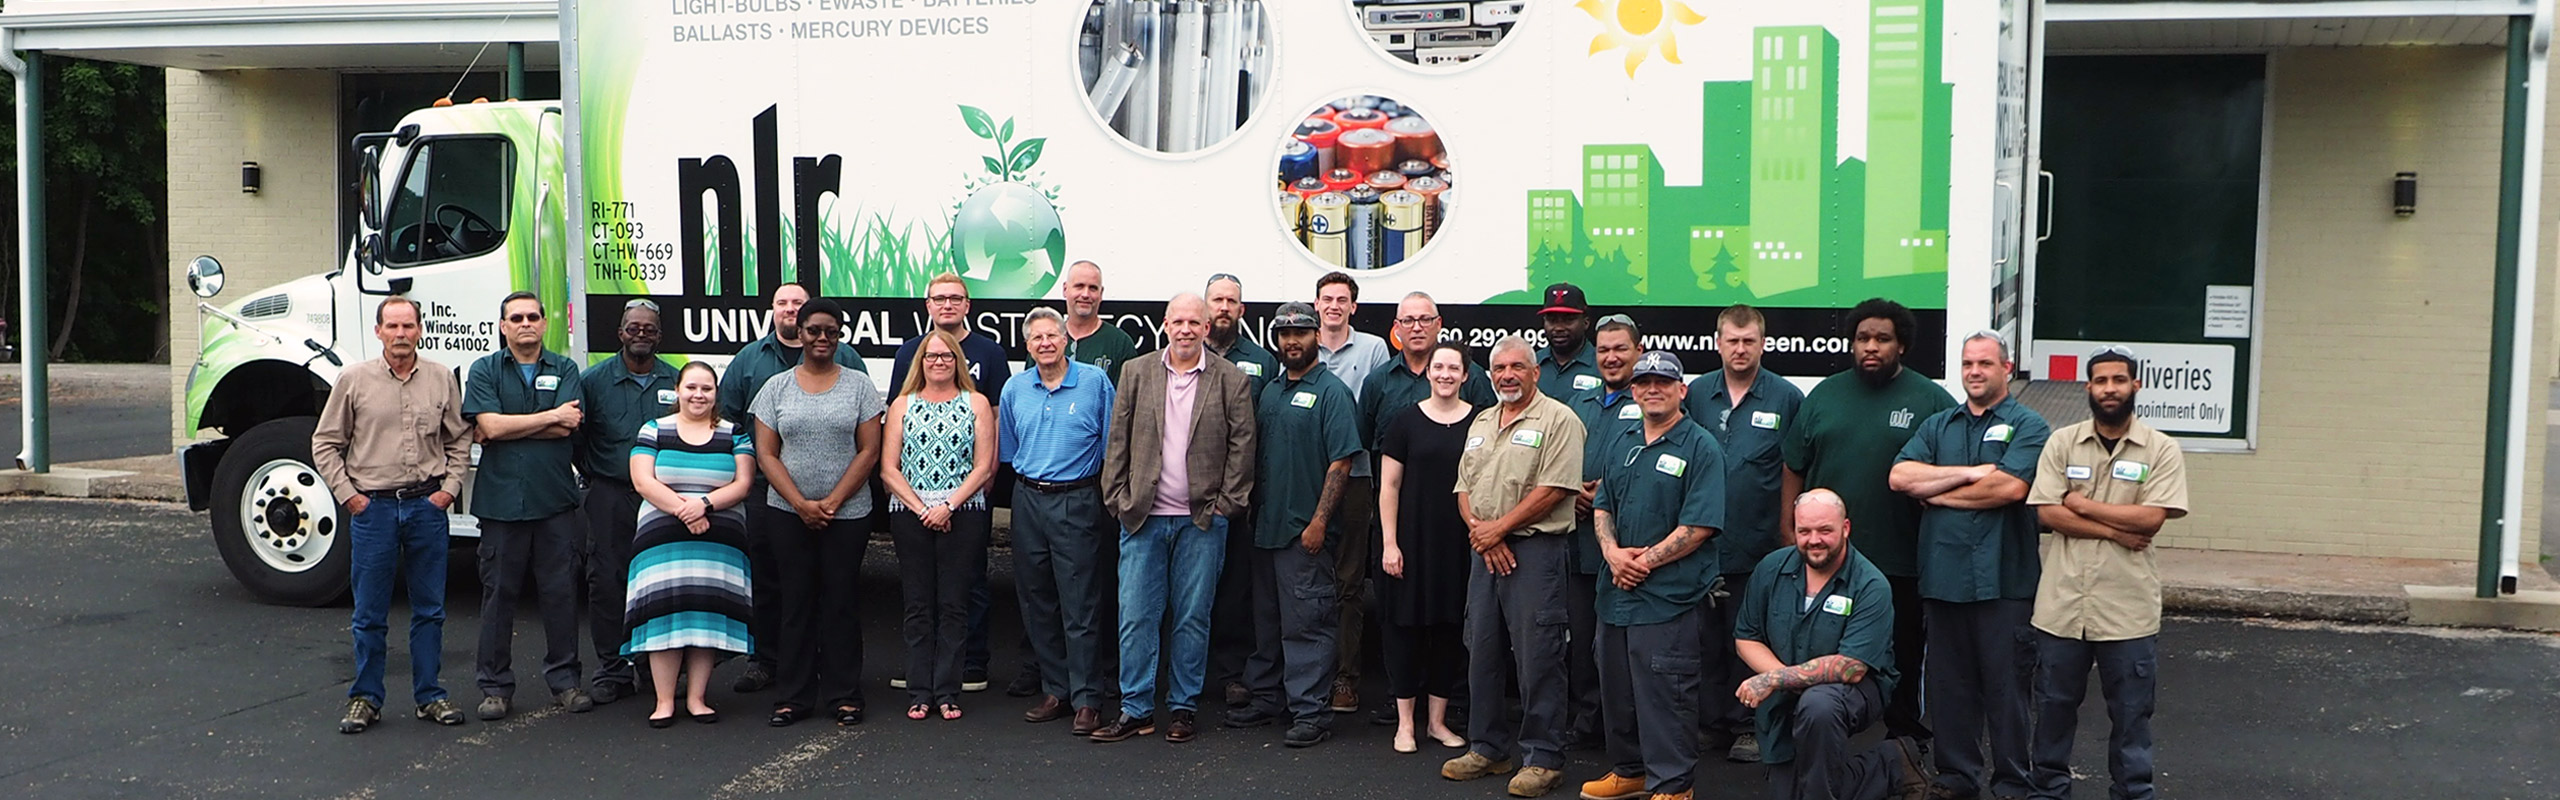 A picture of the nlr staff including the office staff, UWH workers, and lamp processing team. NLR works tirelessly to make sure recycling your universal waste is a painless process.